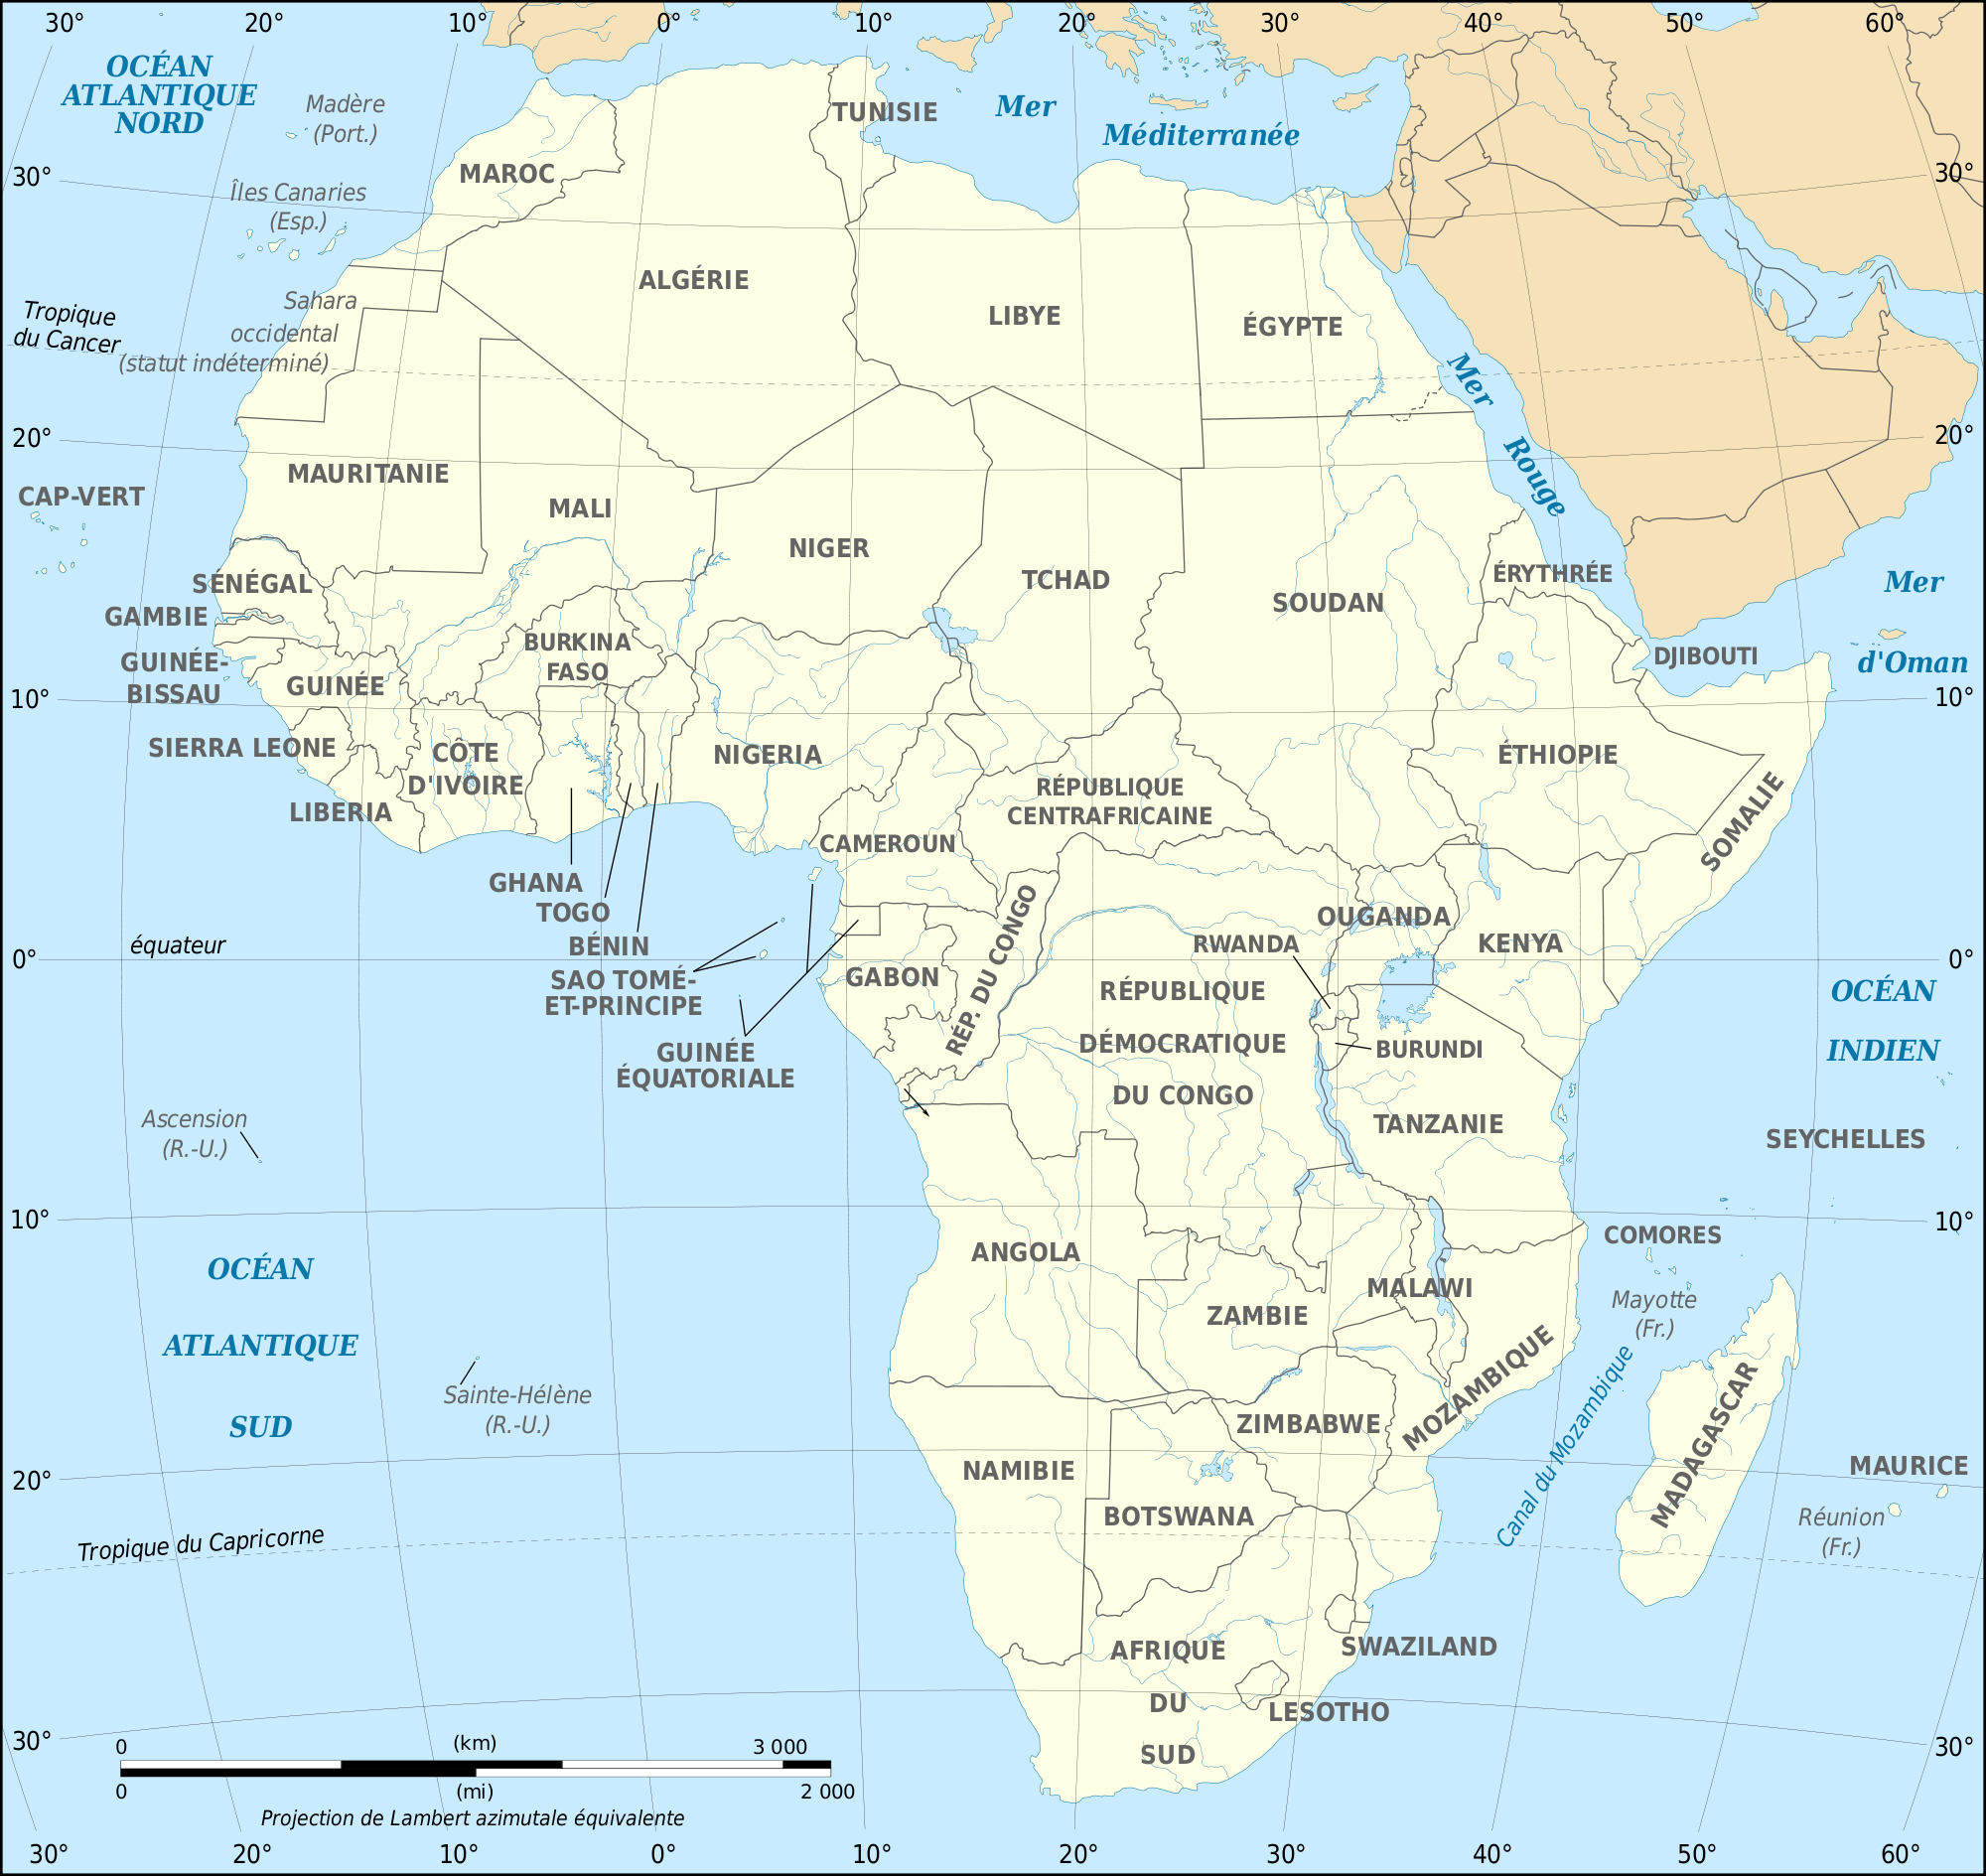 African Continent Fr Mapsofnet - What continent is israel in